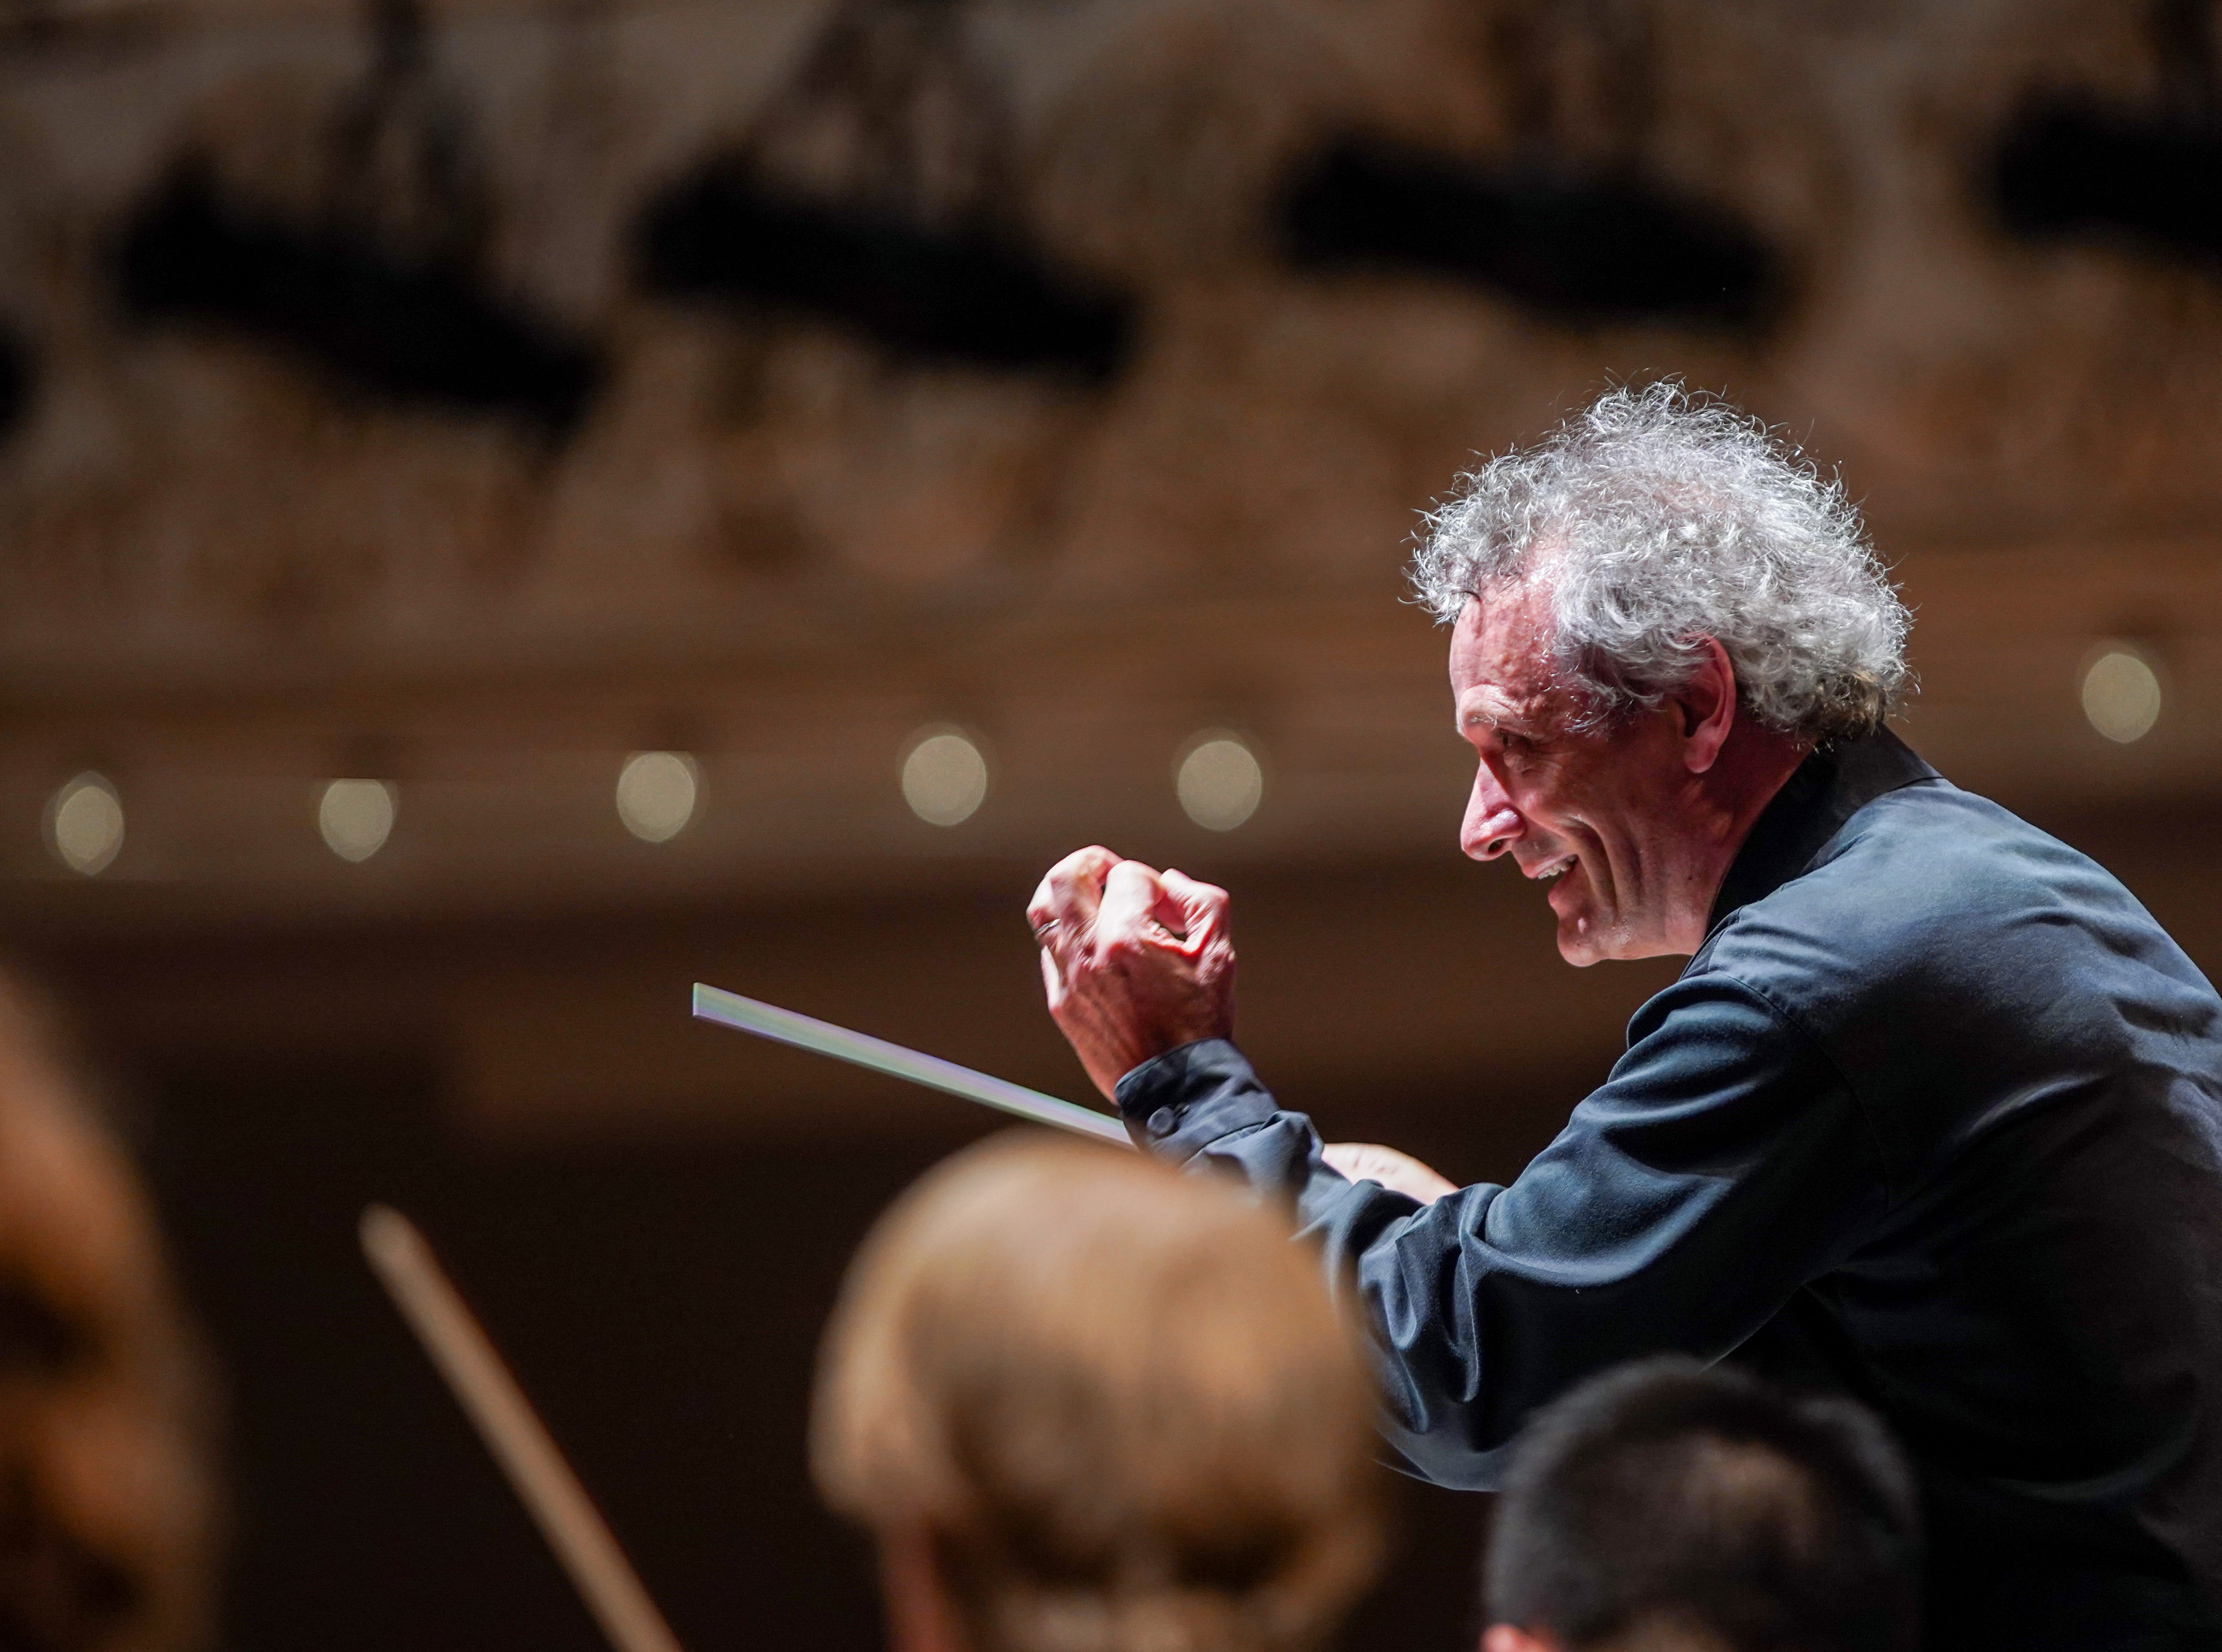 Cincinnati Symphony Orchestra music director Louis Langrée begins his seventh season in the position during the 2019-2020 season, the orchestra's 125th.